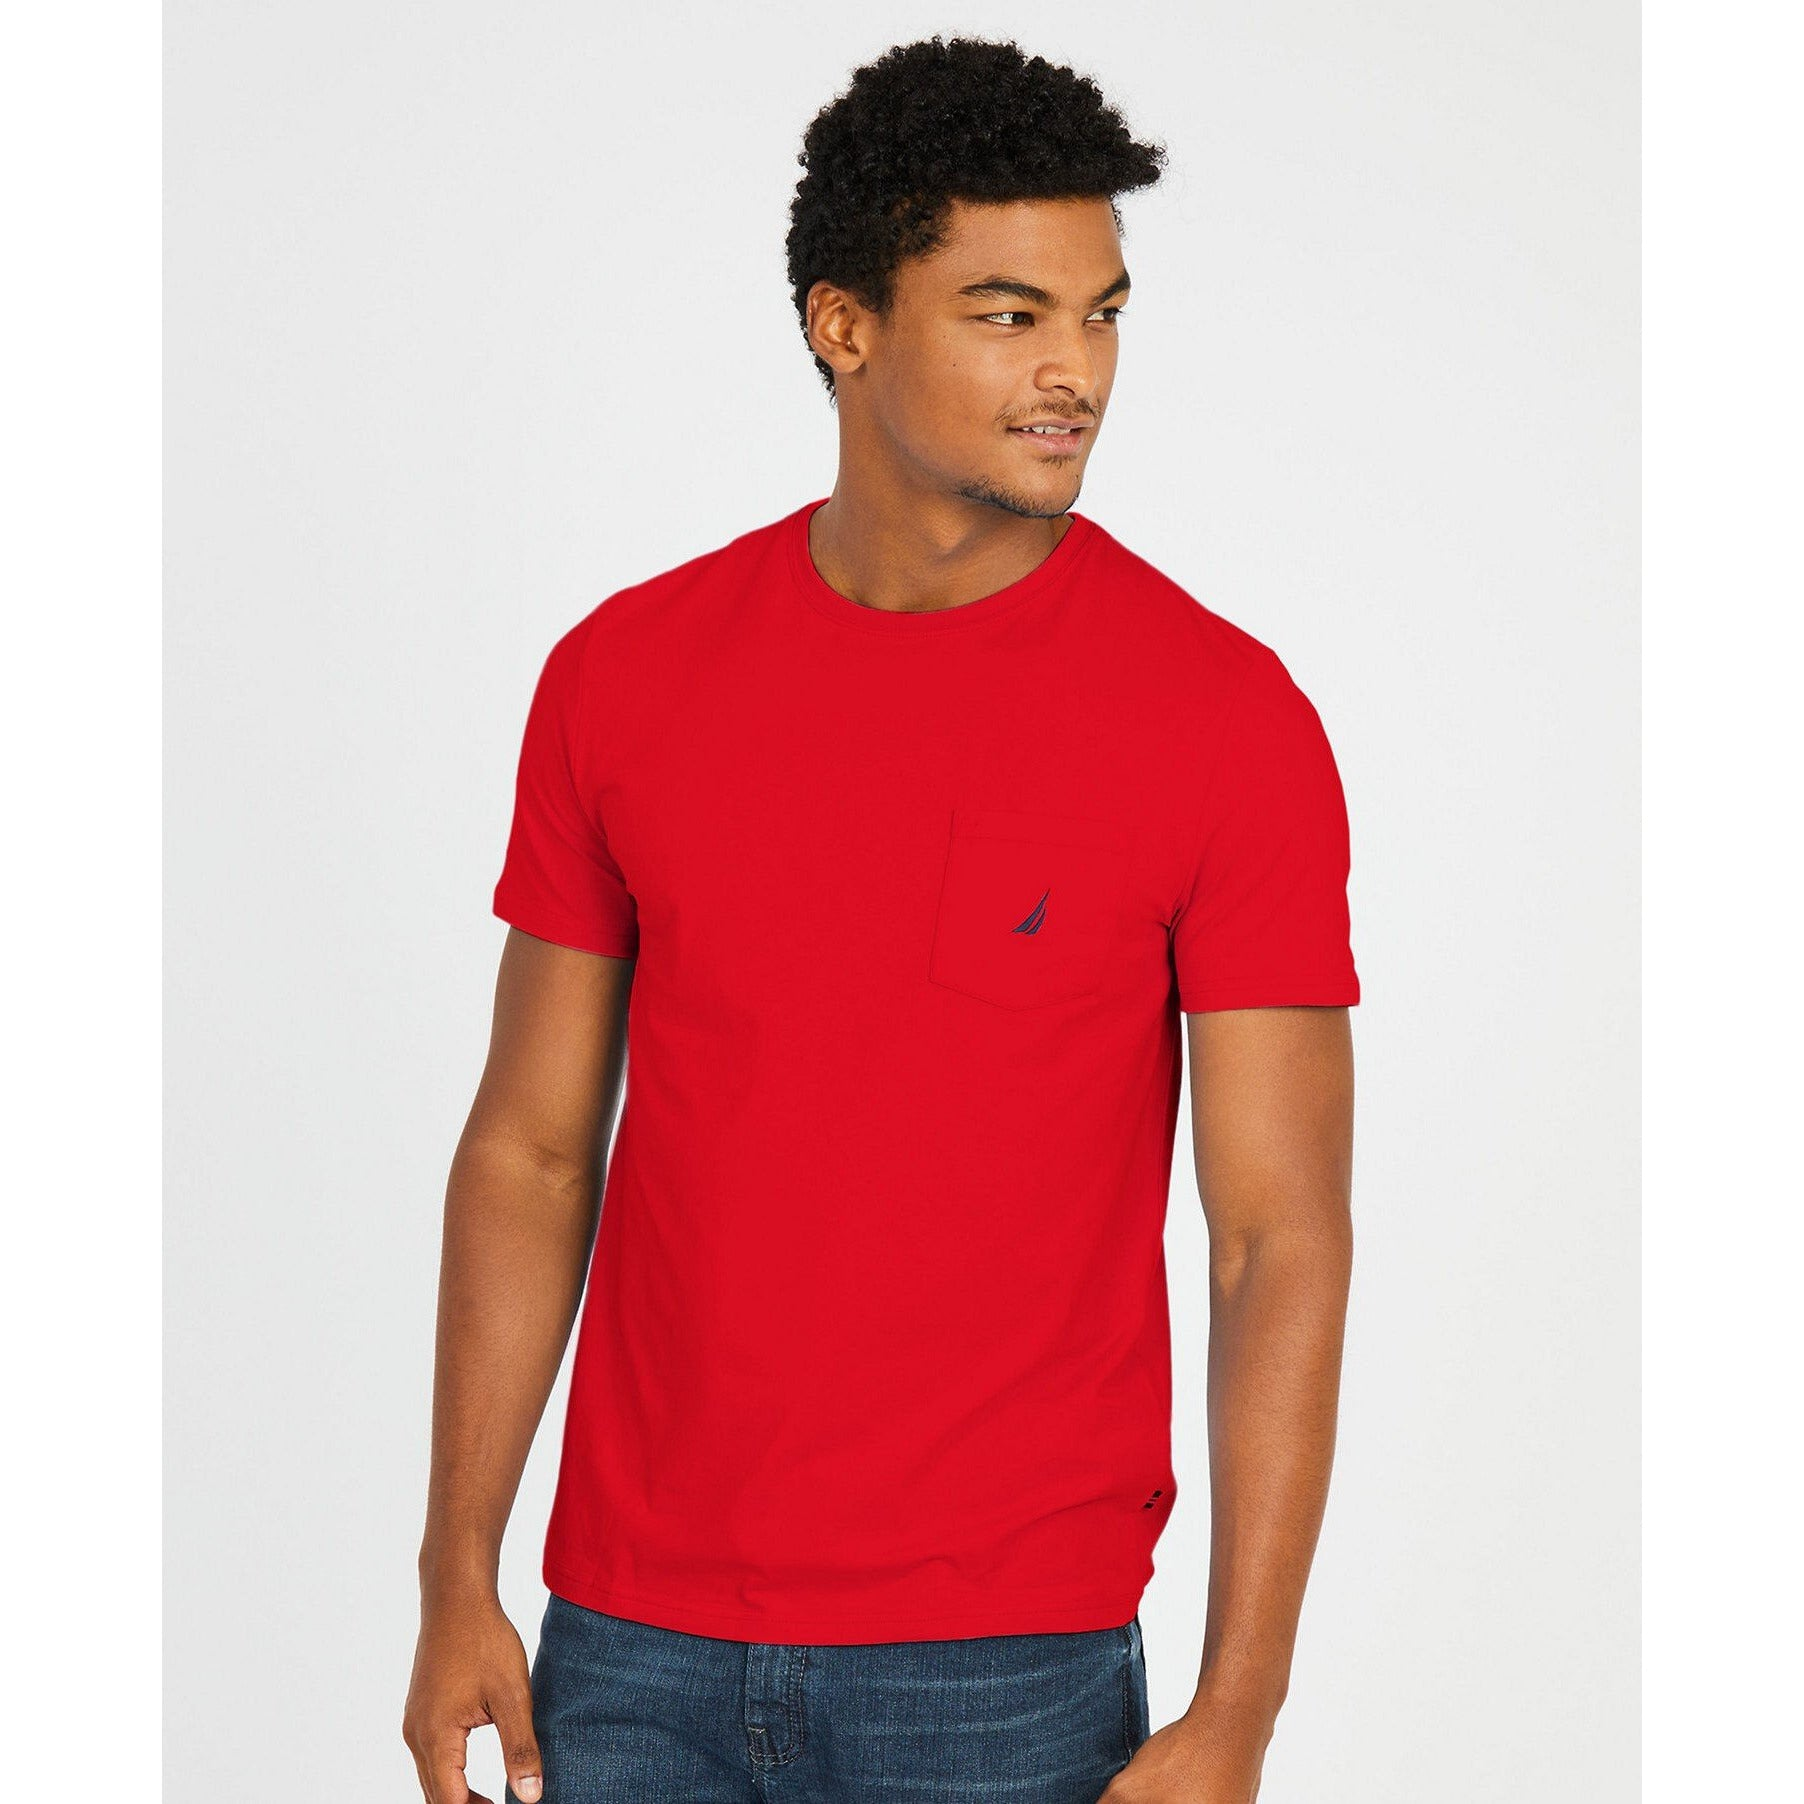 NAUTICA BIG & TALL TEES - RED